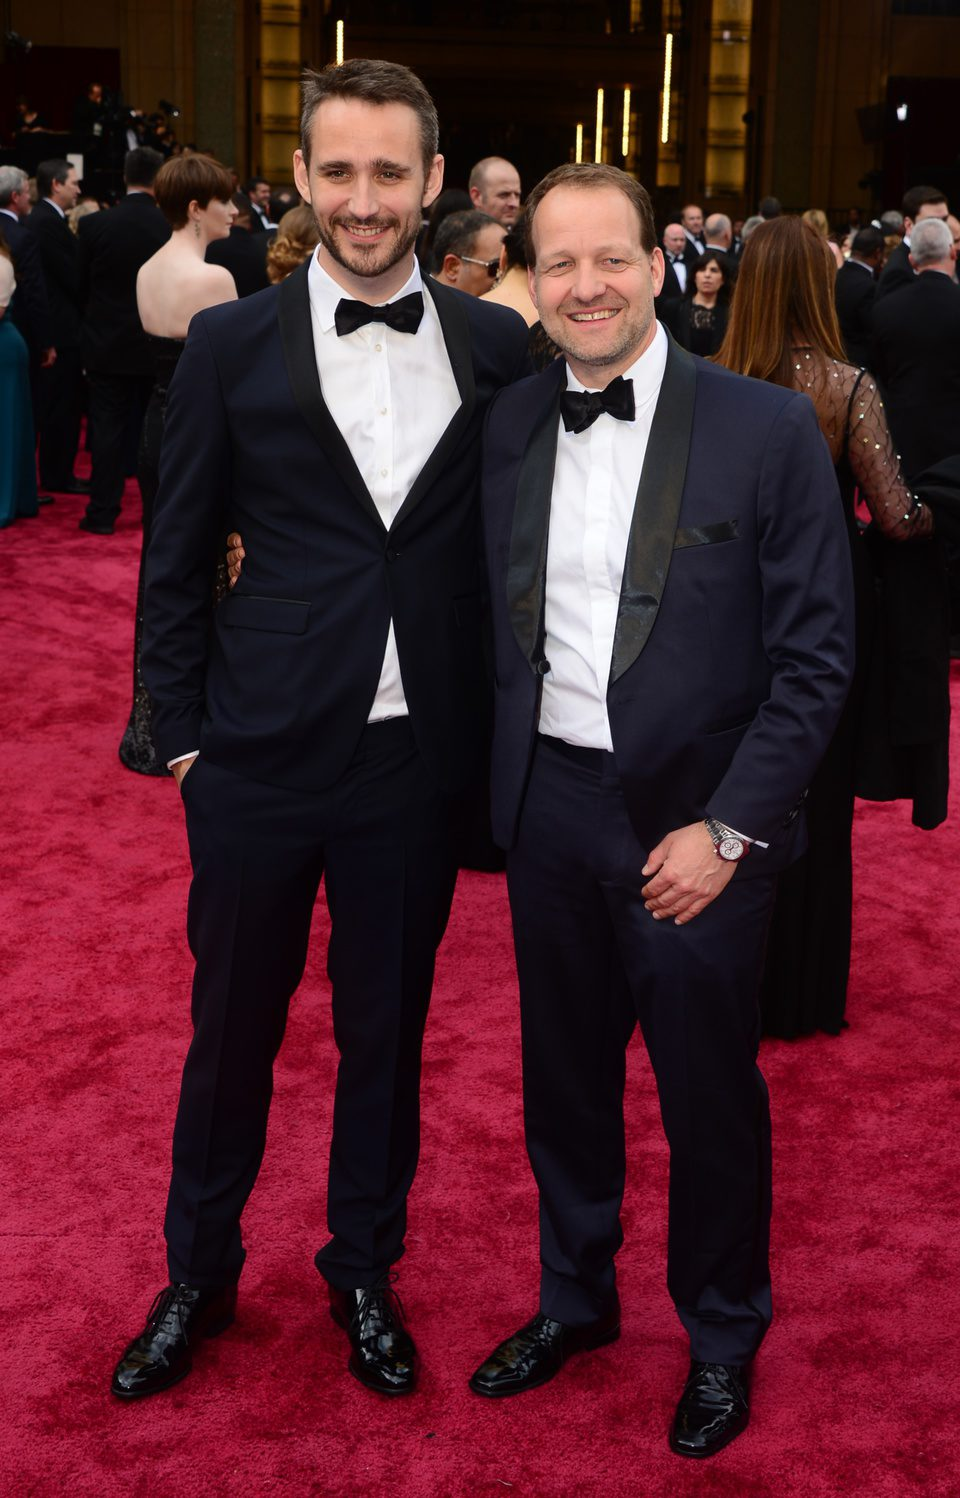 Anders Walter and Kim Magnusson at the 2014 Oscars